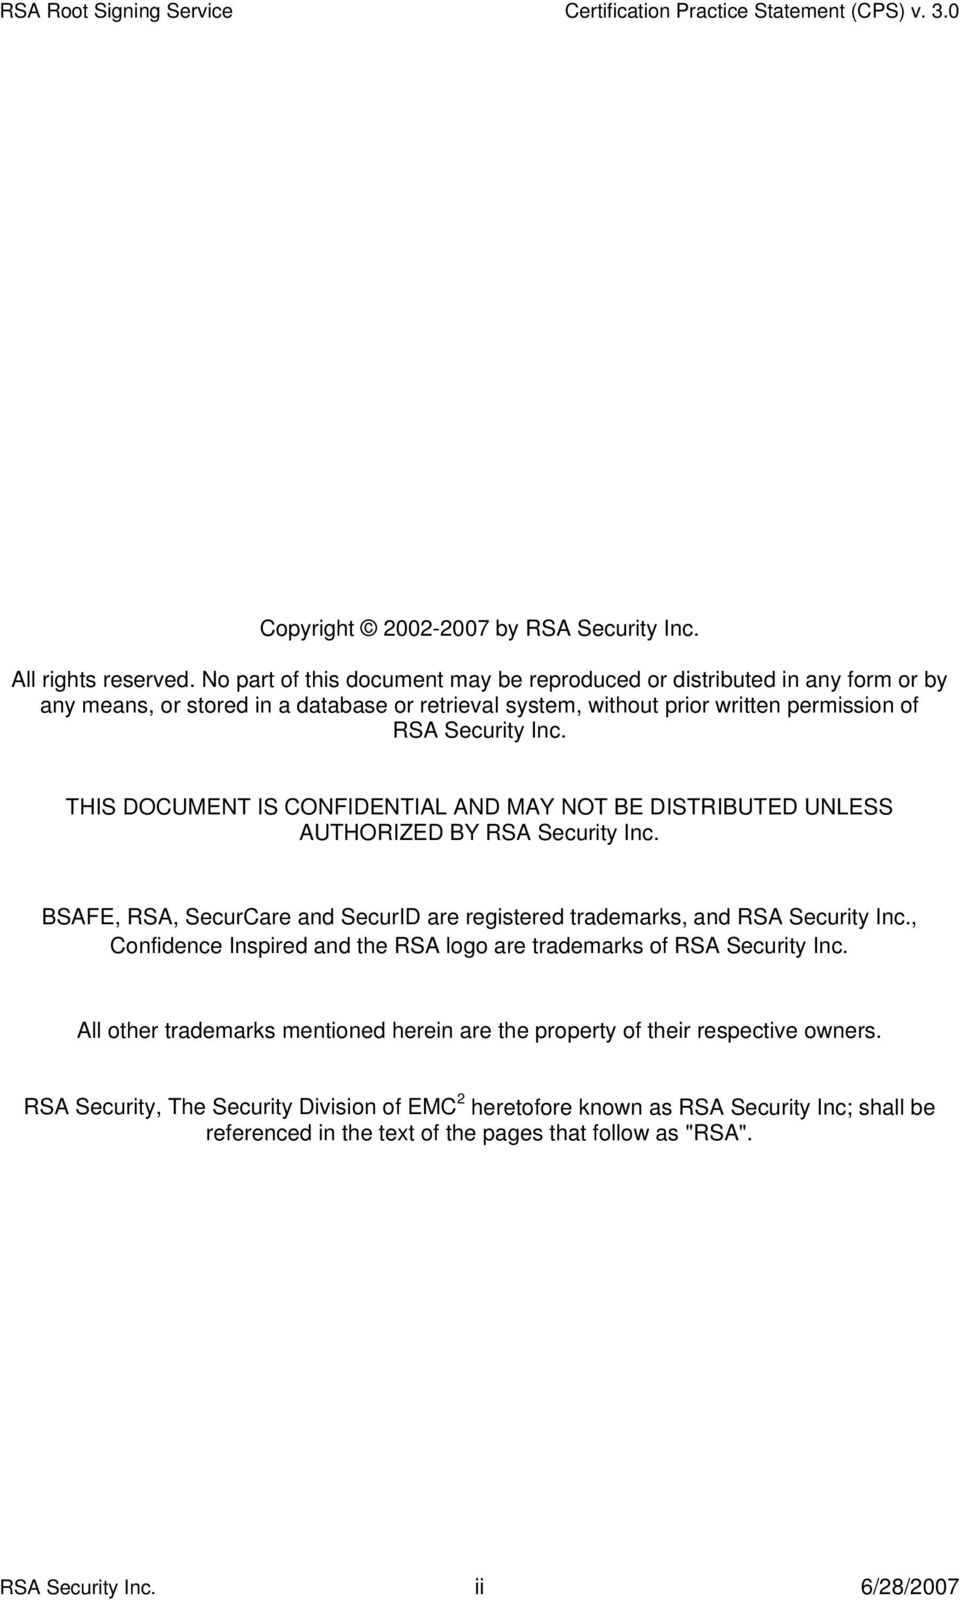 THIS DOCUMENT IS CONFIDENTIAL AND MAY NOT BE DISTRIBUTED UNLESS AUTHORIZED BY RSA Security Inc. BSAFE, RSA, SecurCare and SecurID are registered trademarks, and RSA Security Inc.